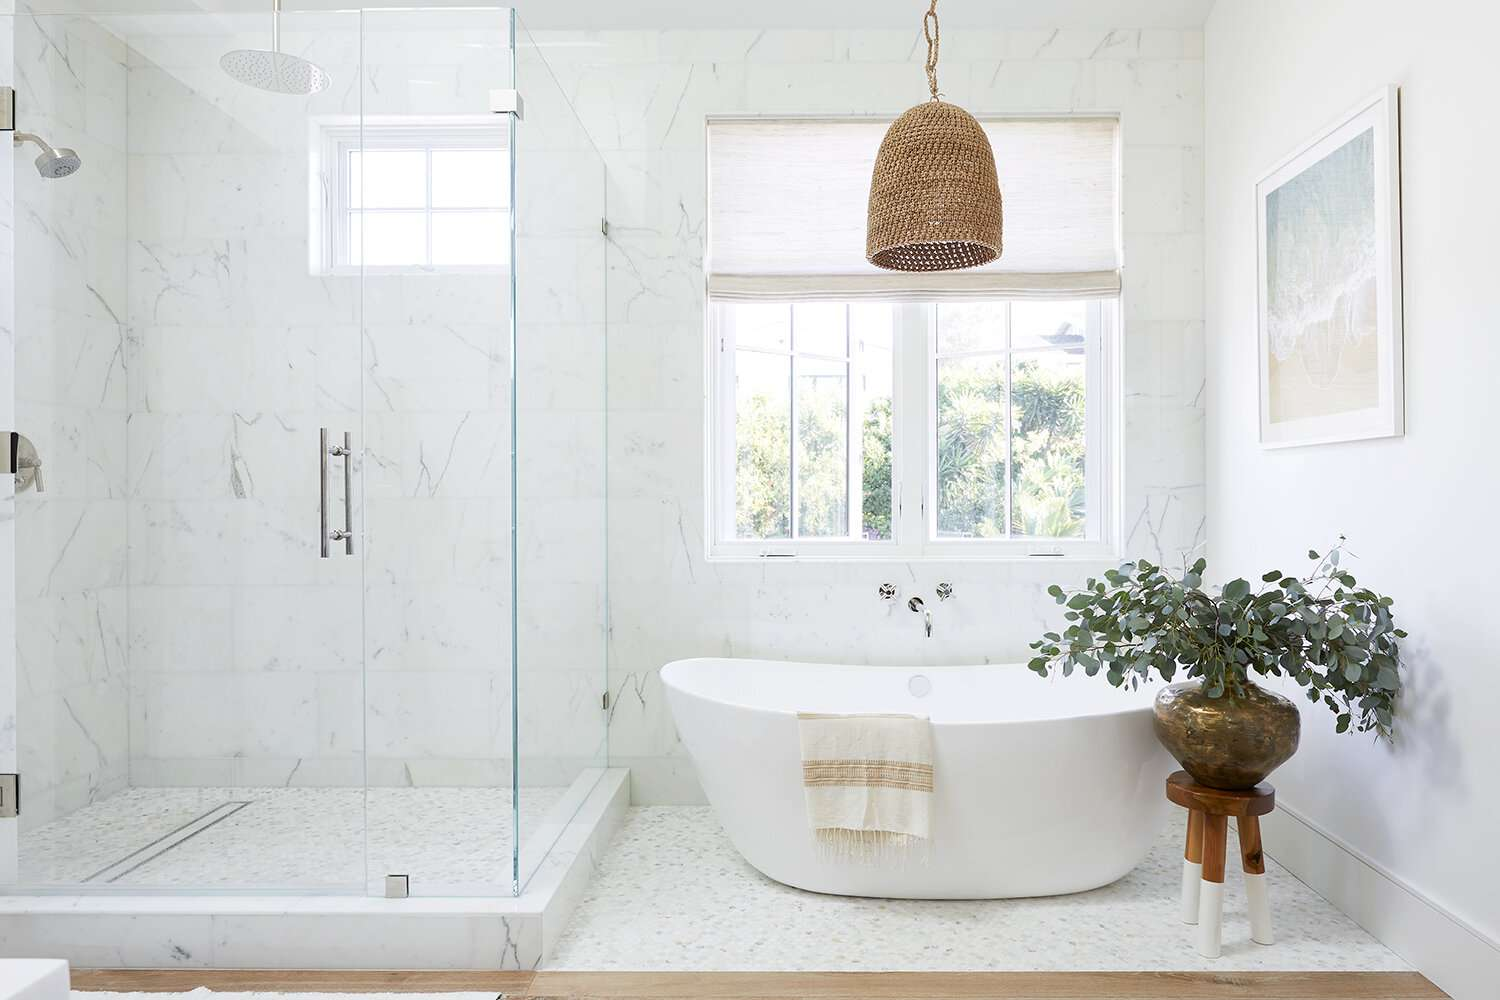 Bright, modern bathroom with earthy touches